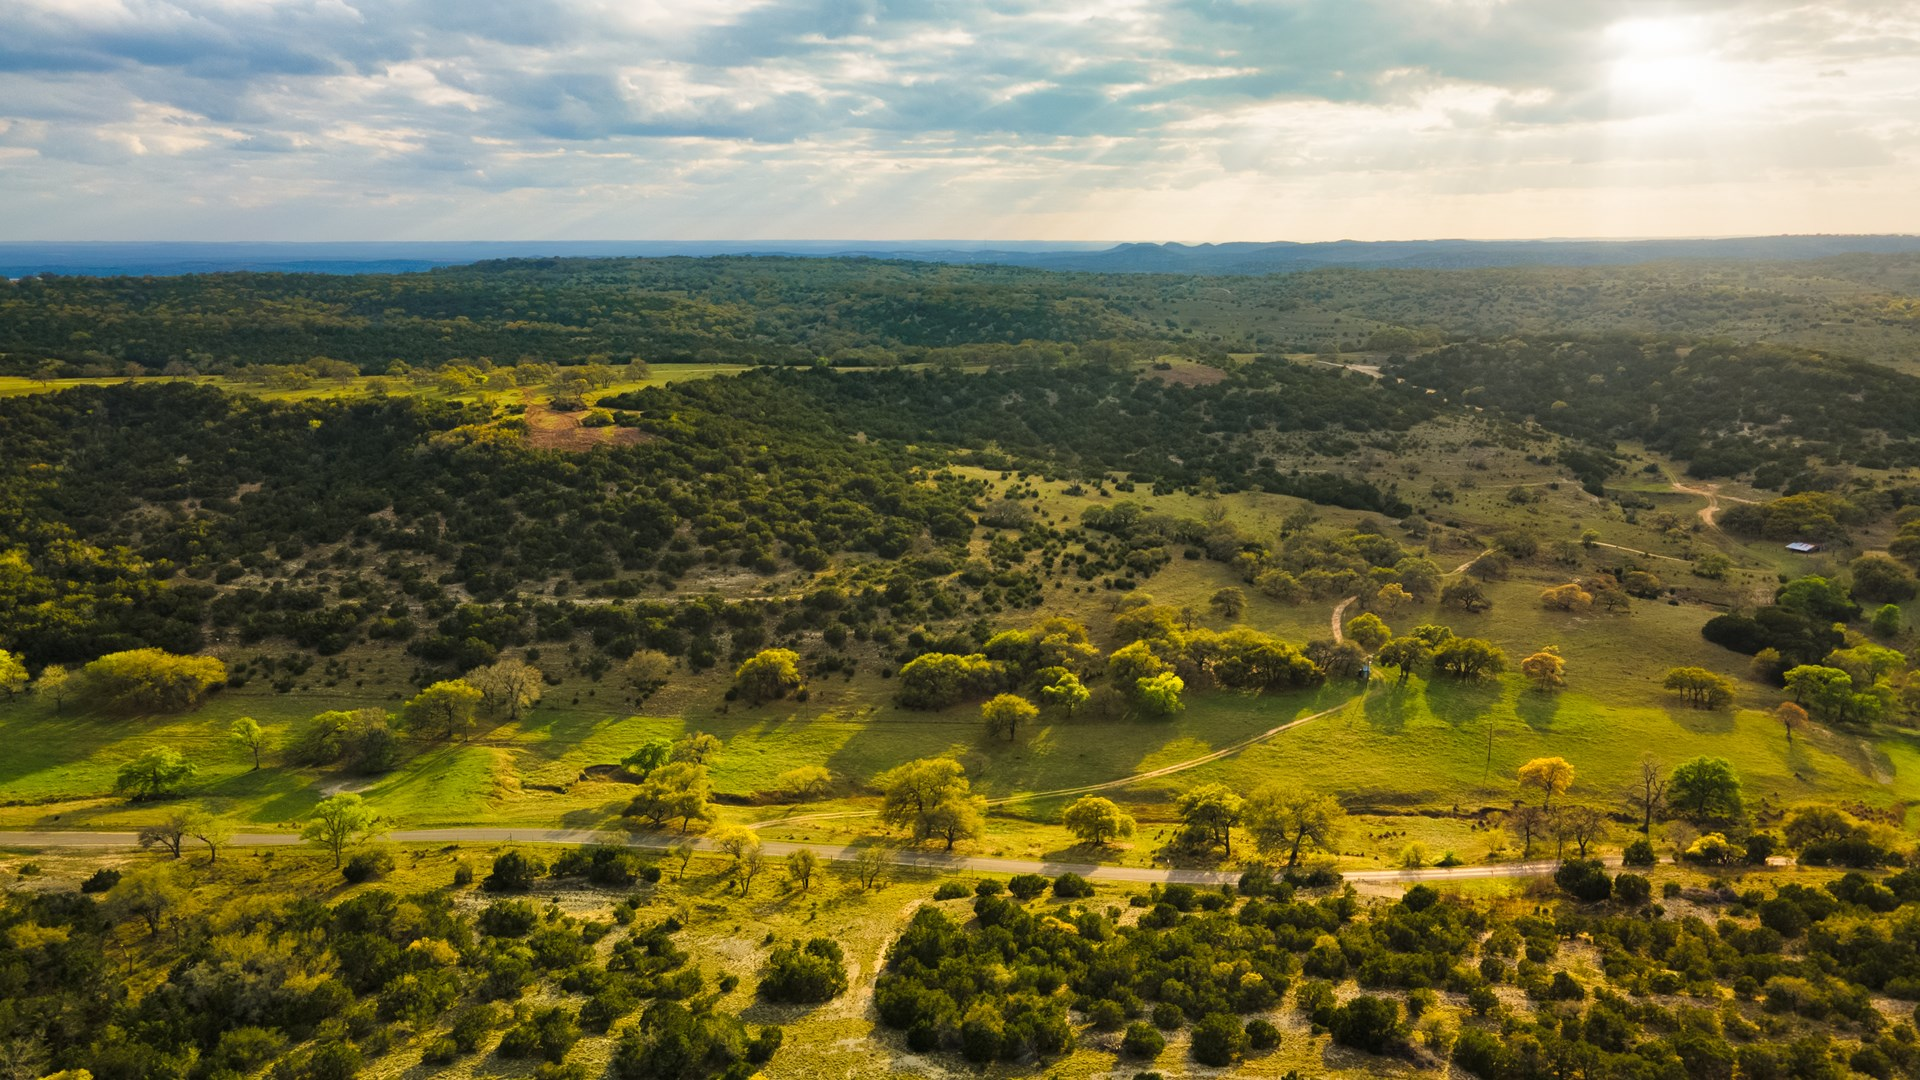 Kendall County Land For Sale with Amazing Views!